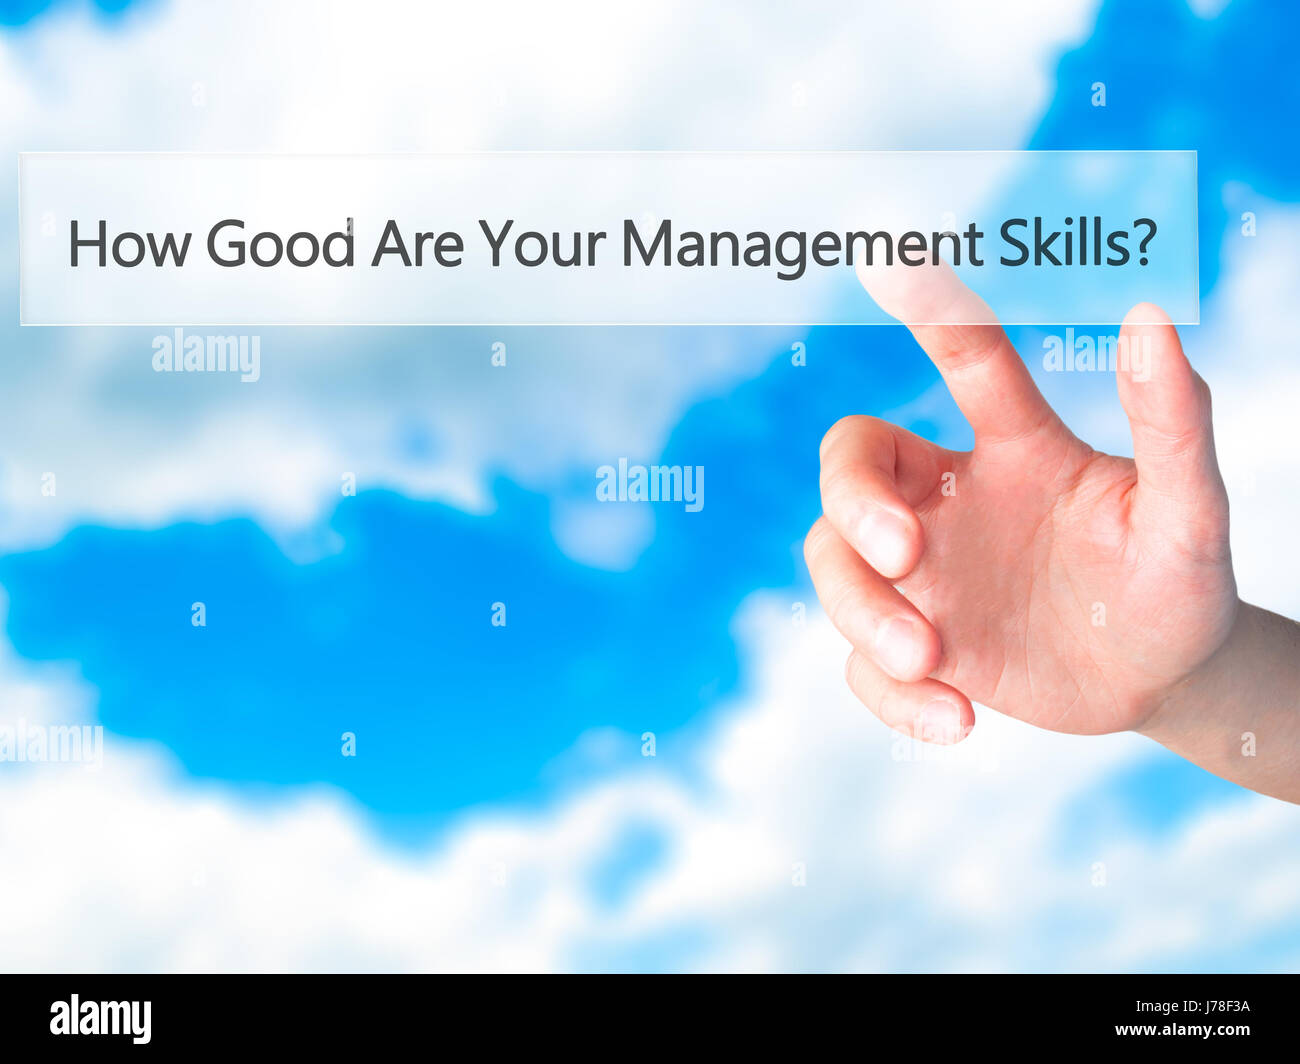 How Good Are Your Management Skills - Hand pressing a button on blurred background concept . Business, technology, - Stock Image